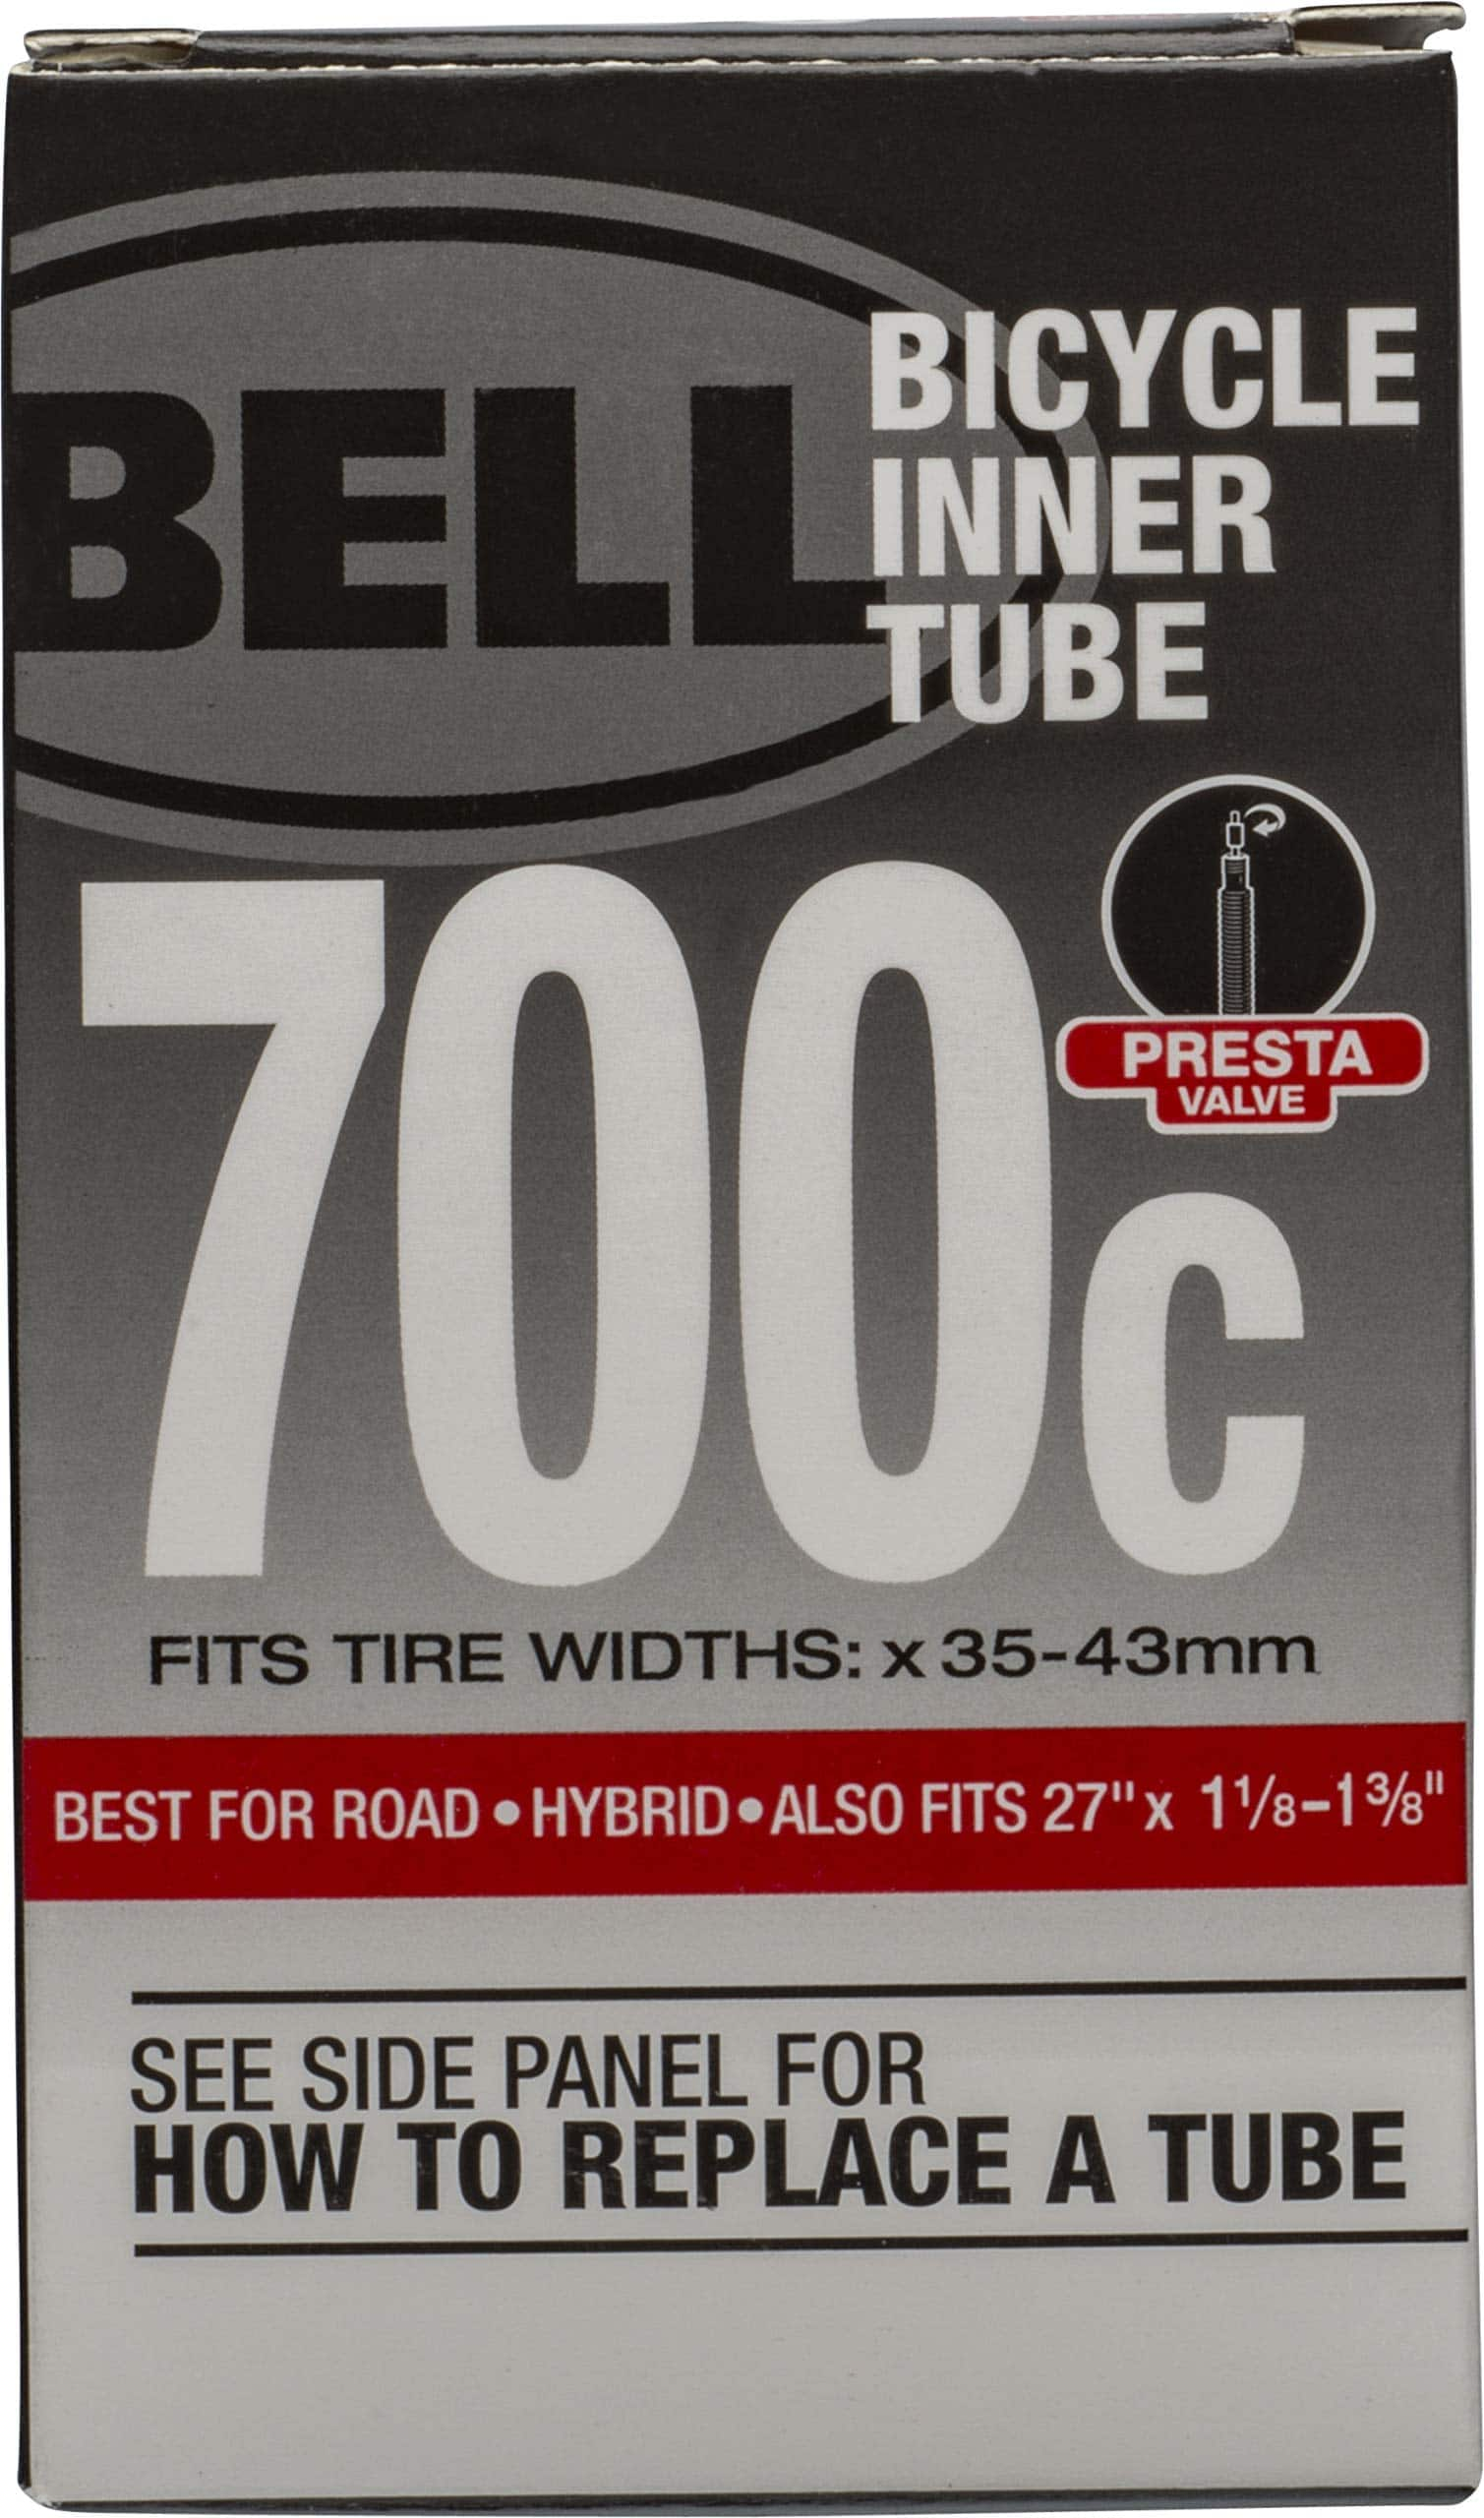 Bell Bike Tube 700 x 35-43c 40mm Presta @ Amazon $1.96